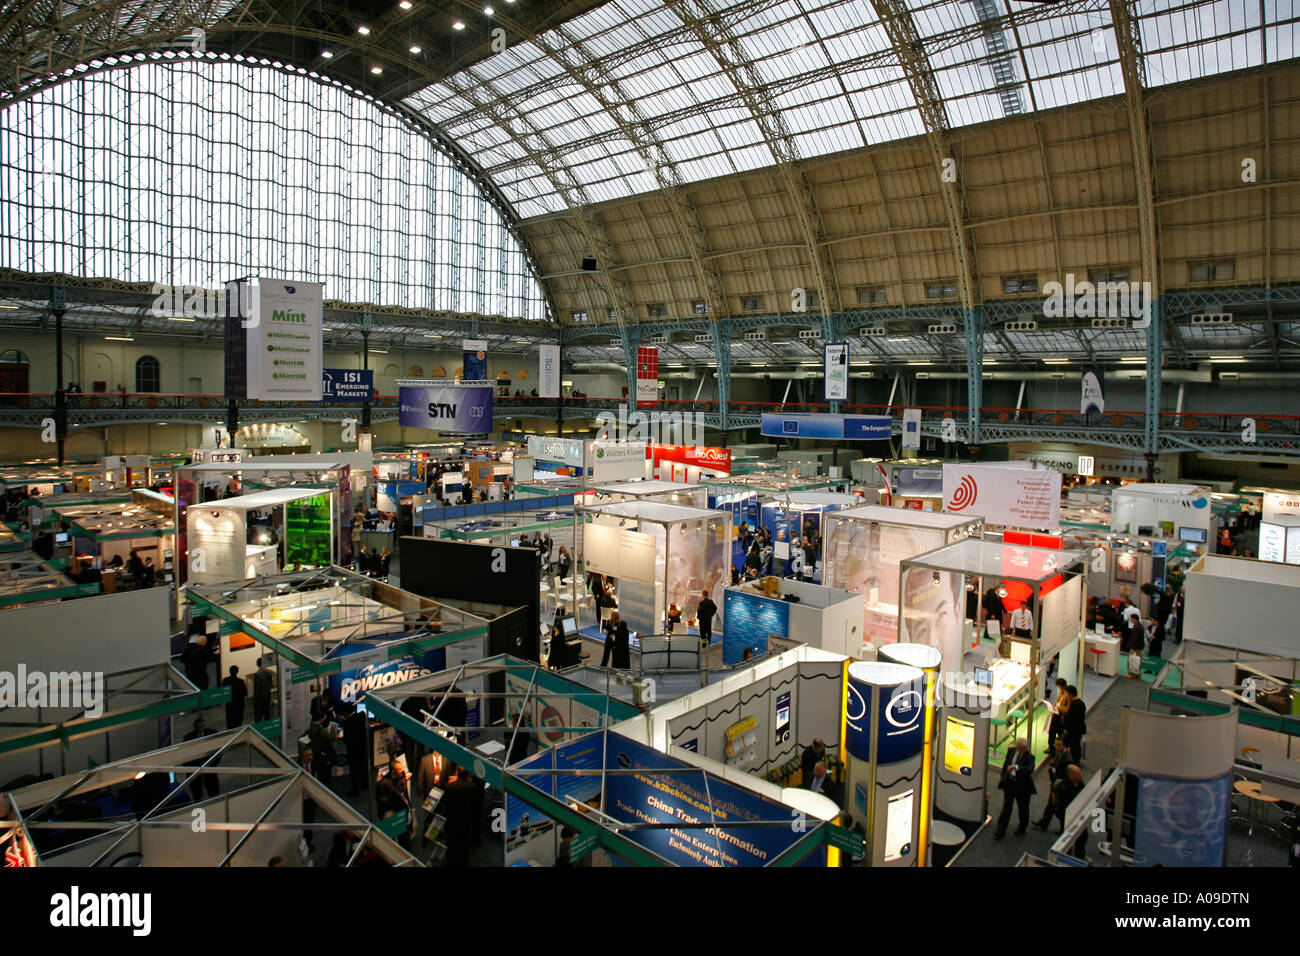 Trade Stands Olympia : Trade show taking place at kensington olympia great hall